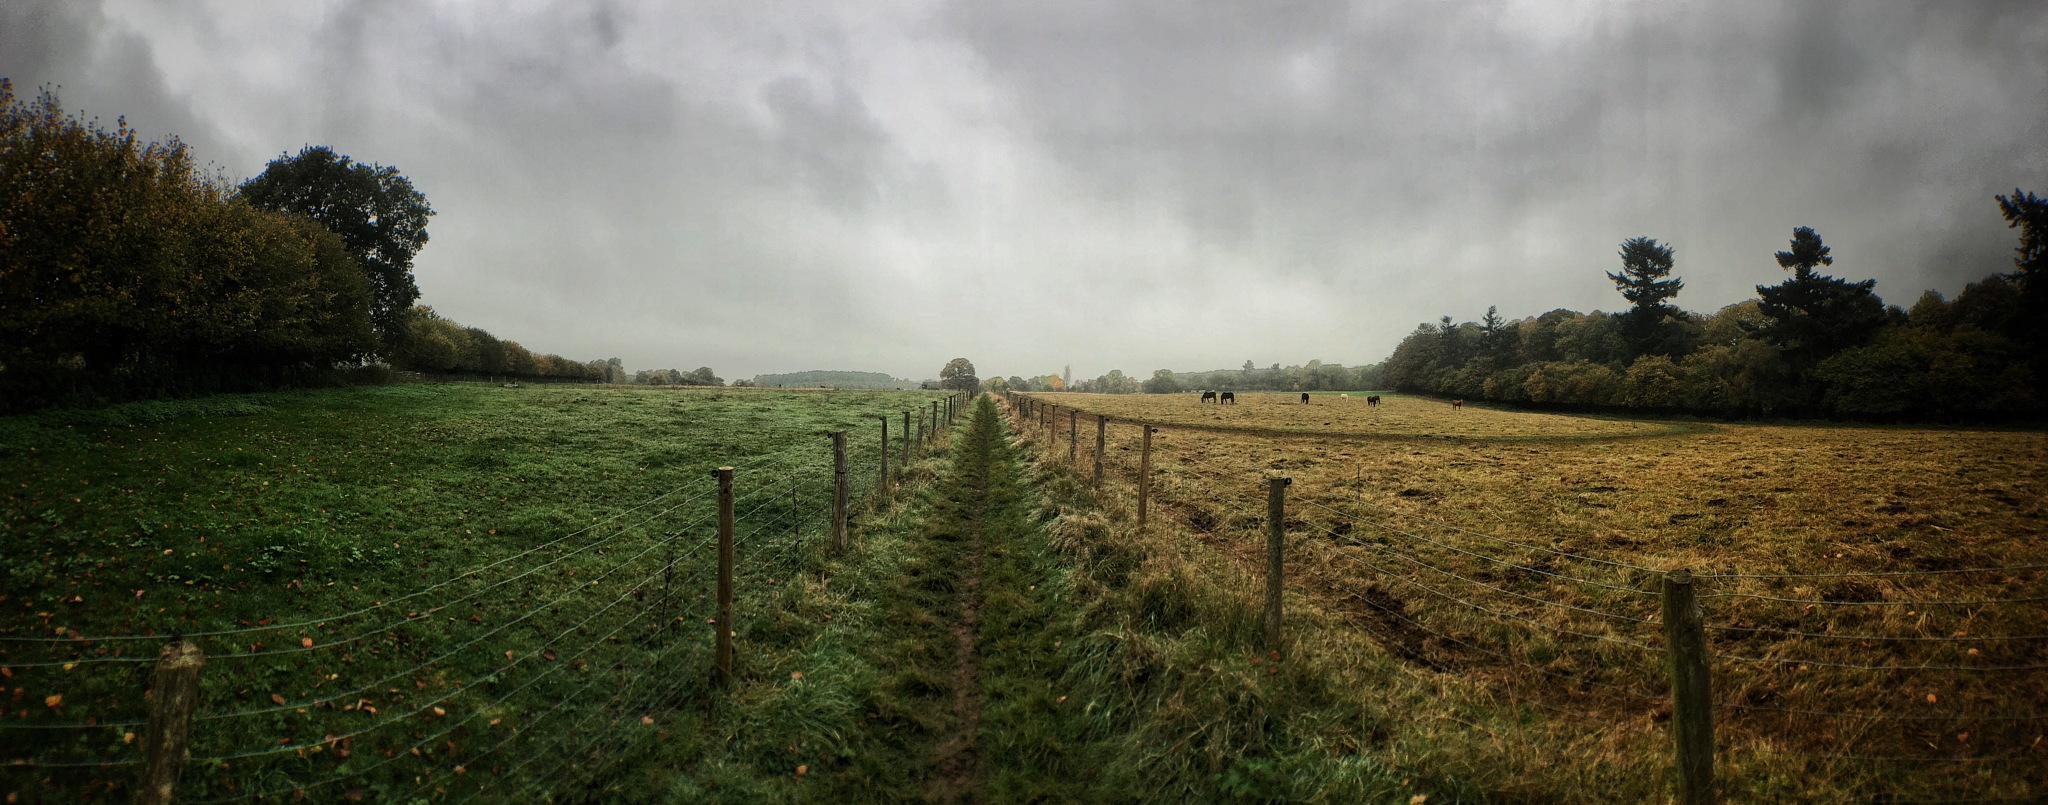 Panoramic View across farmland on a moody, misty Autumn day by beaniedee